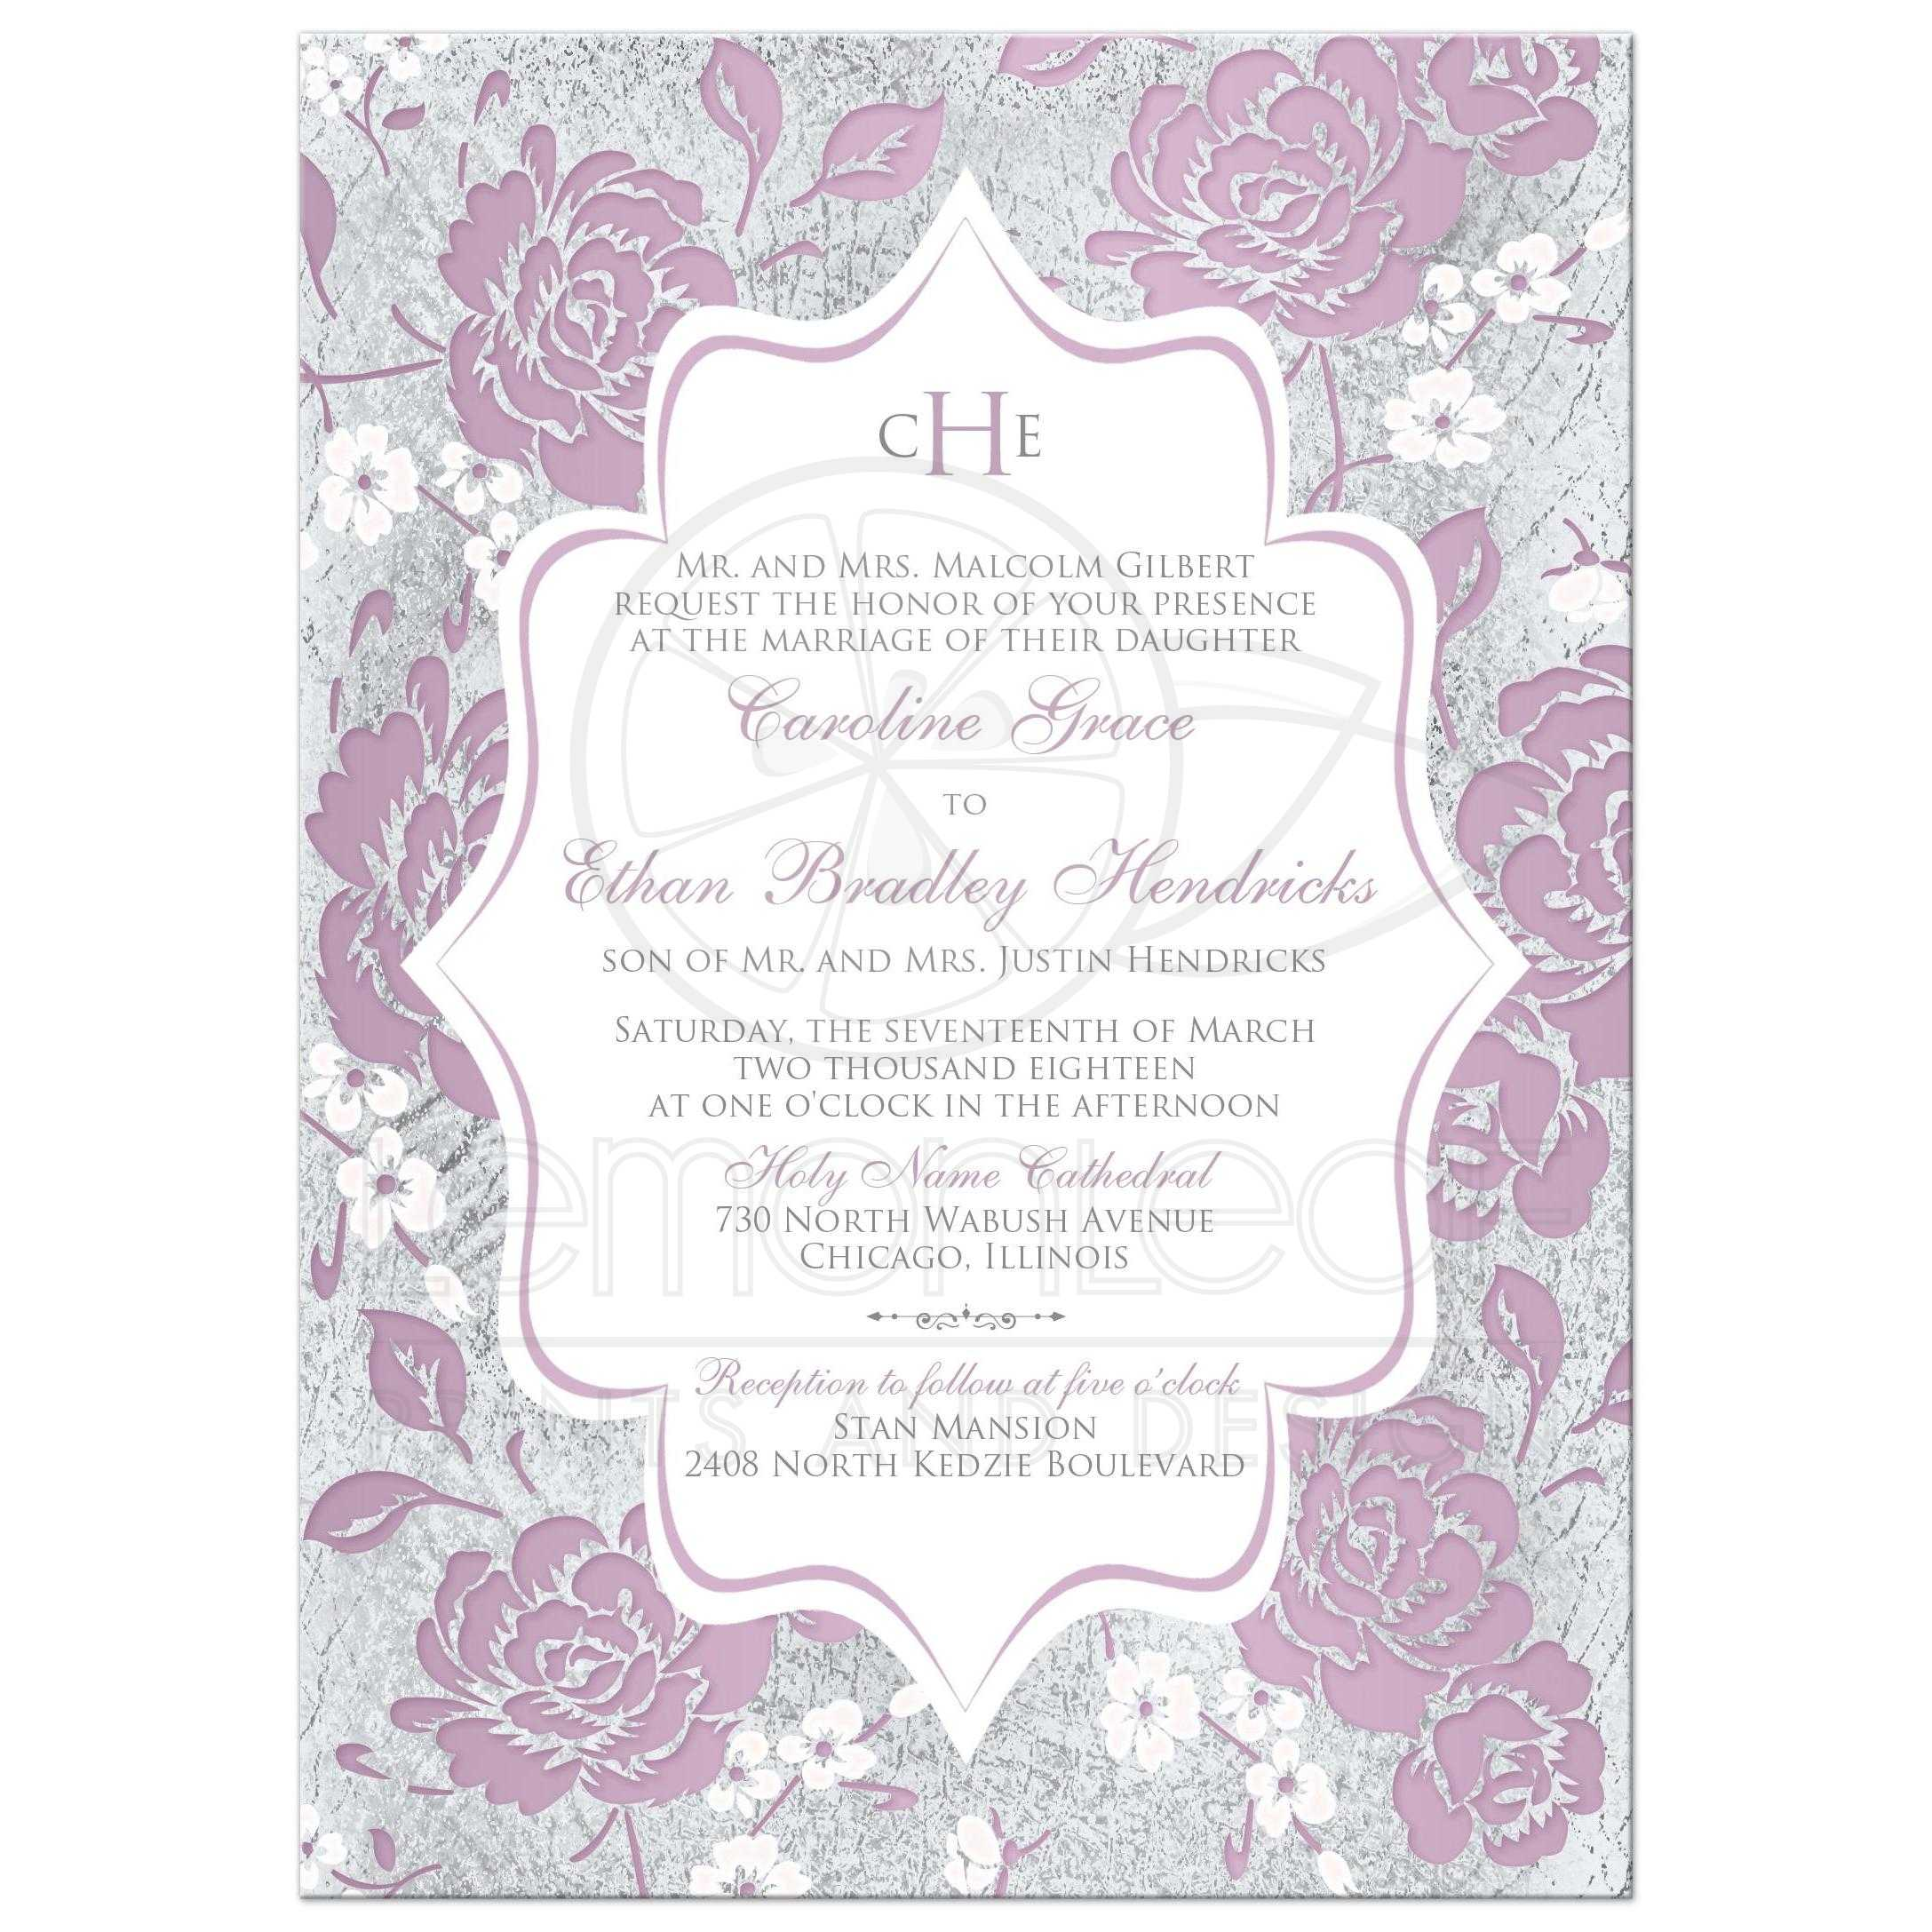 Vintage Purple, Pink, White And Silver Grey Floral Wedding Invitation With  Monogram And ...